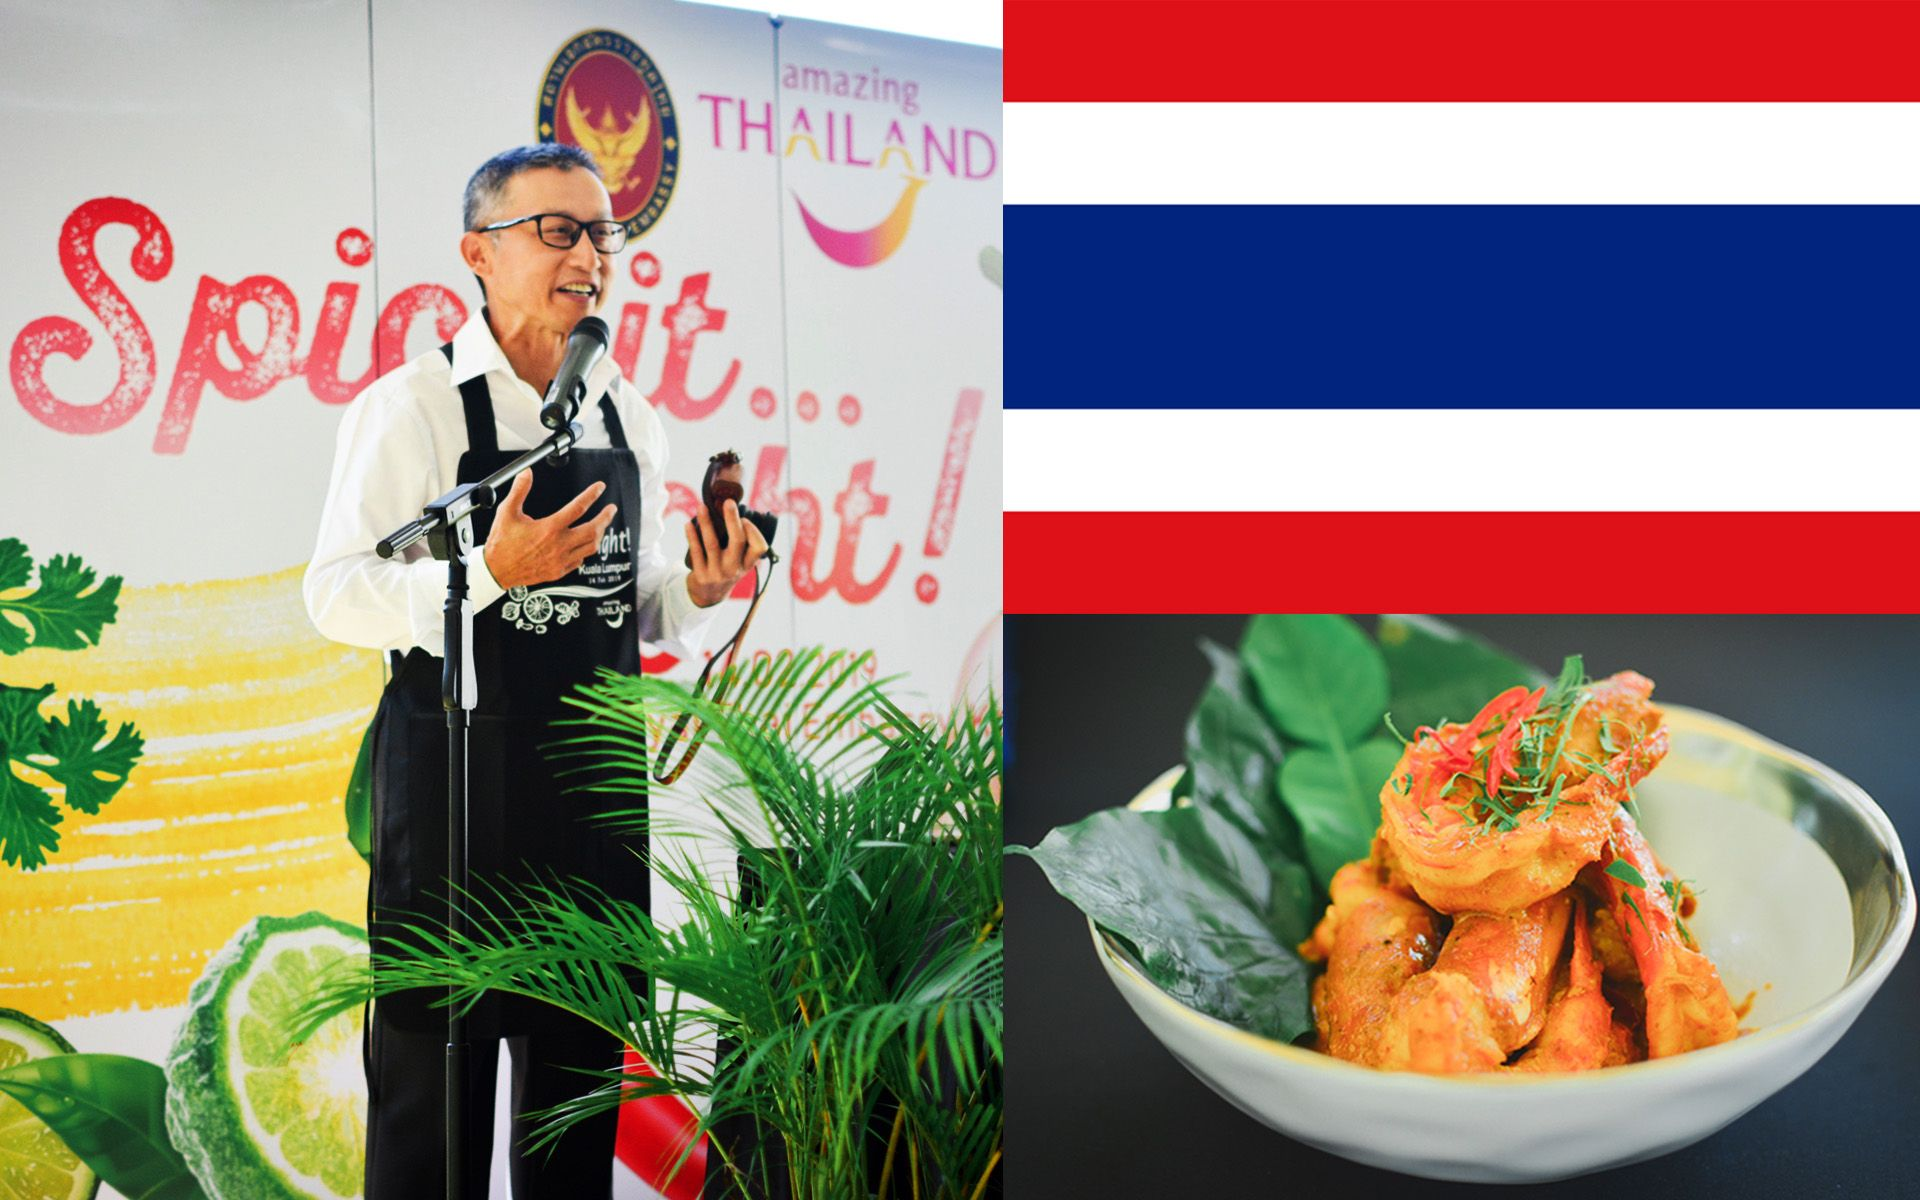 3 Authentic Recipes From The Royal Thai Embassy